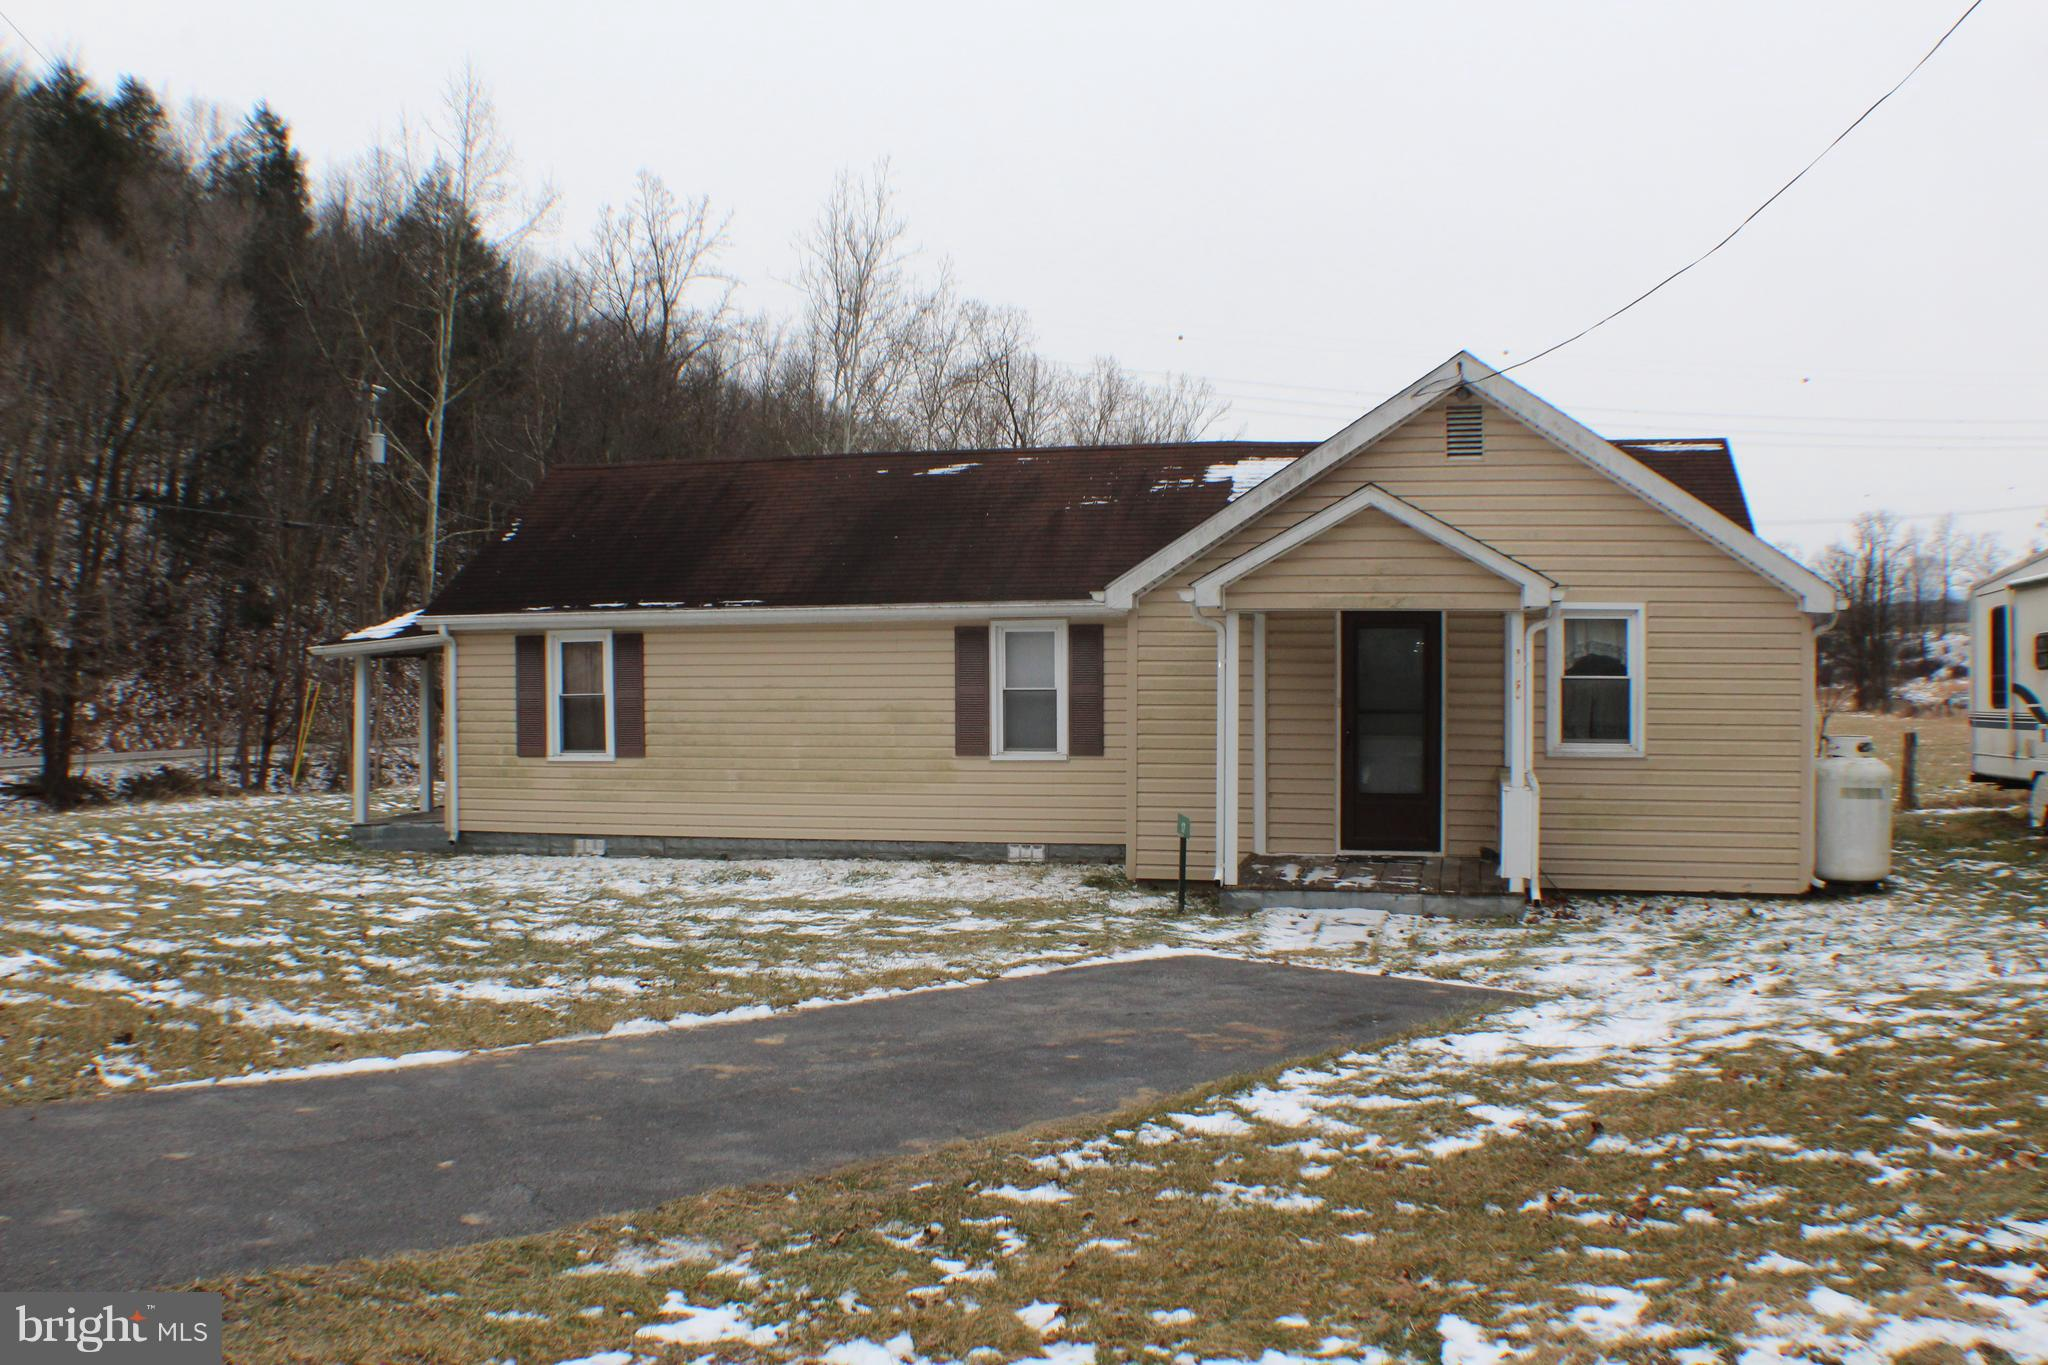 17 MAGISTRATE LANE, MOUNT STORM, WV 26739